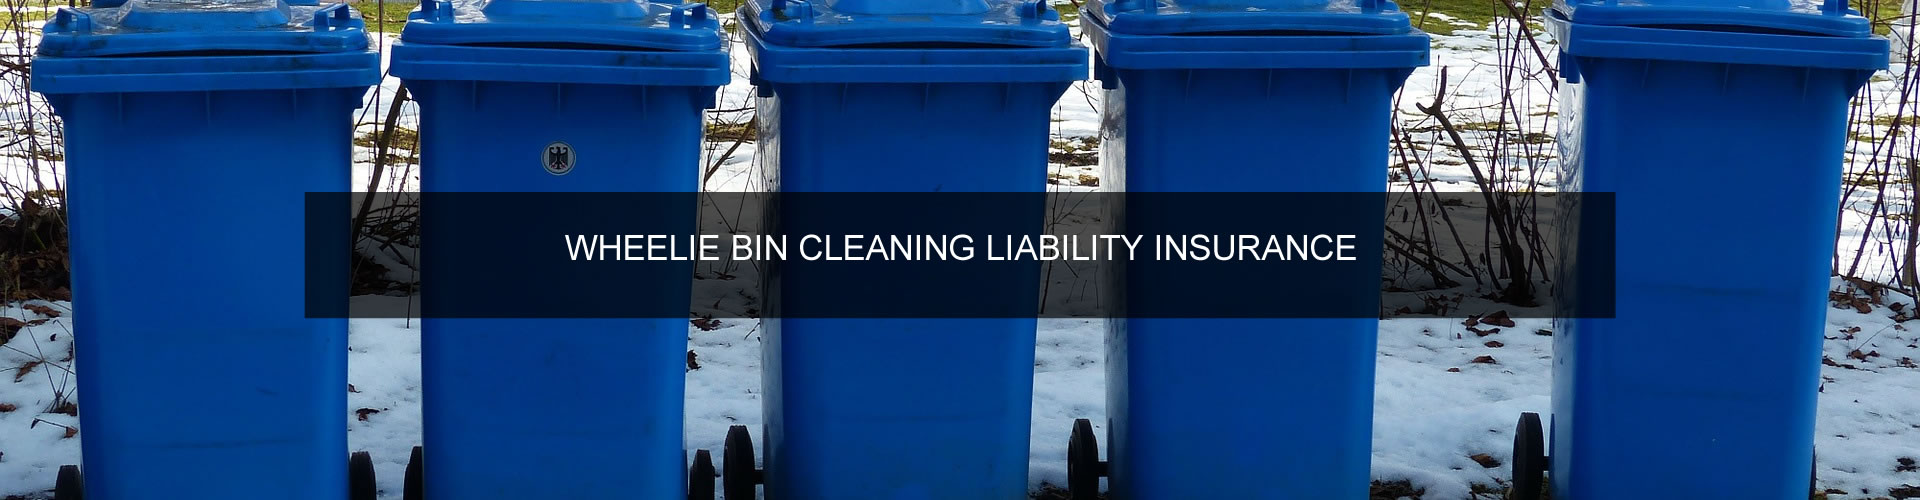 Wheelie Bin Cleaners Liability Insurance